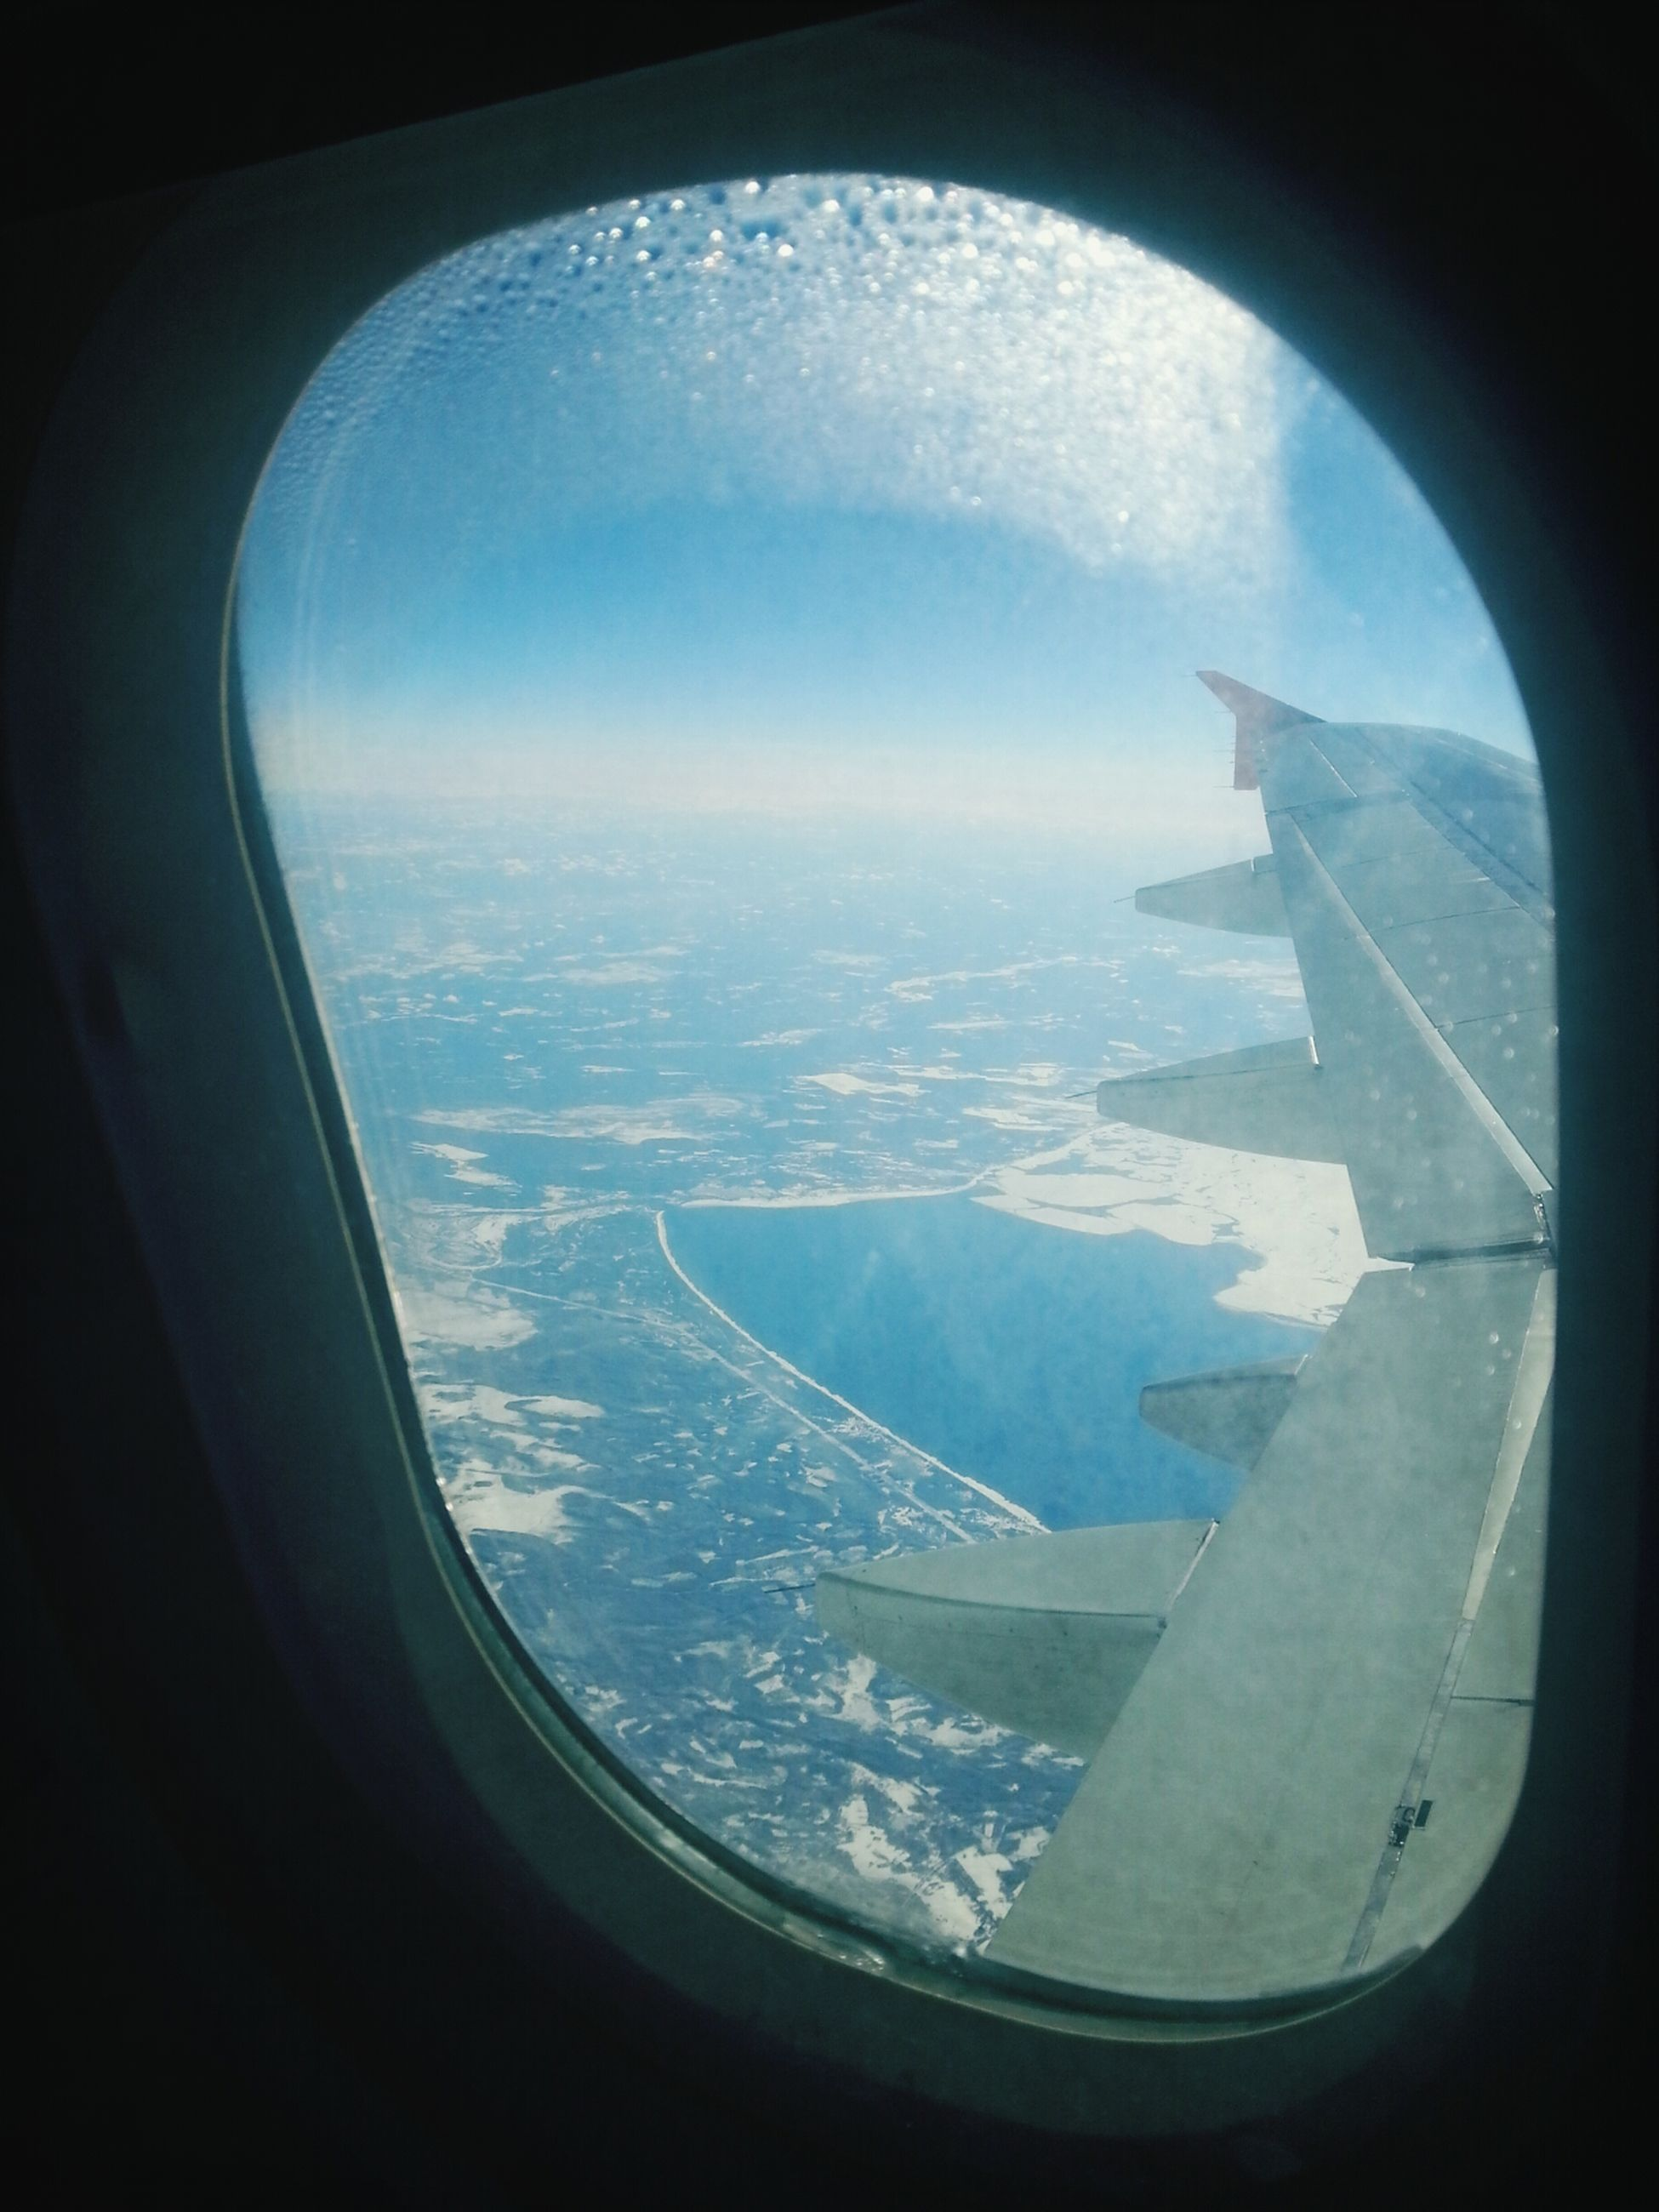 airplane, air vehicle, window, transportation, aerial view, vehicle interior, aircraft wing, mode of transport, flying, transparent, glass - material, sky, indoors, travel, part of, journey, mid-air, looking through window, cropped, landscape